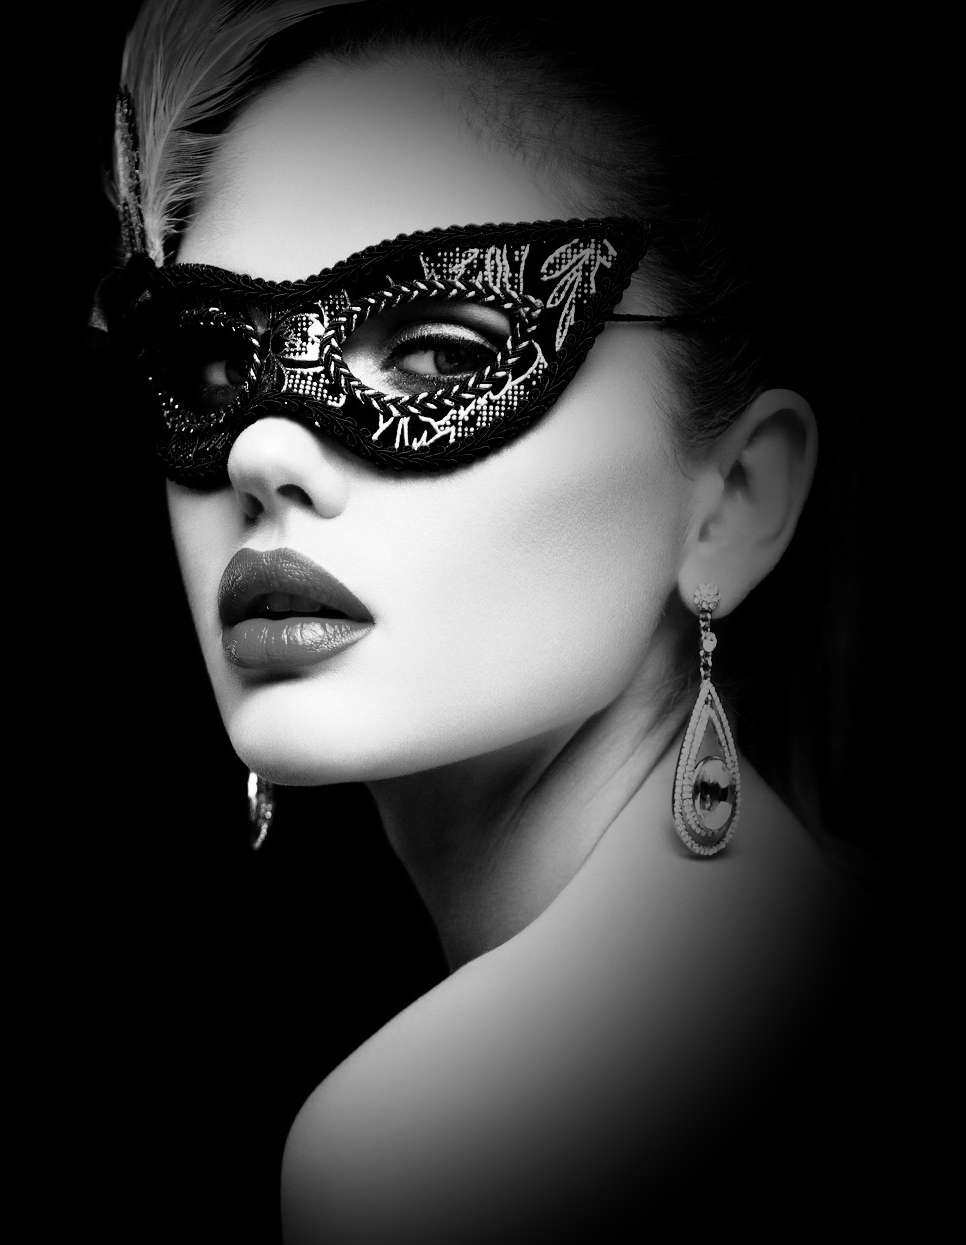 woman wearing a masked ball mask - Image